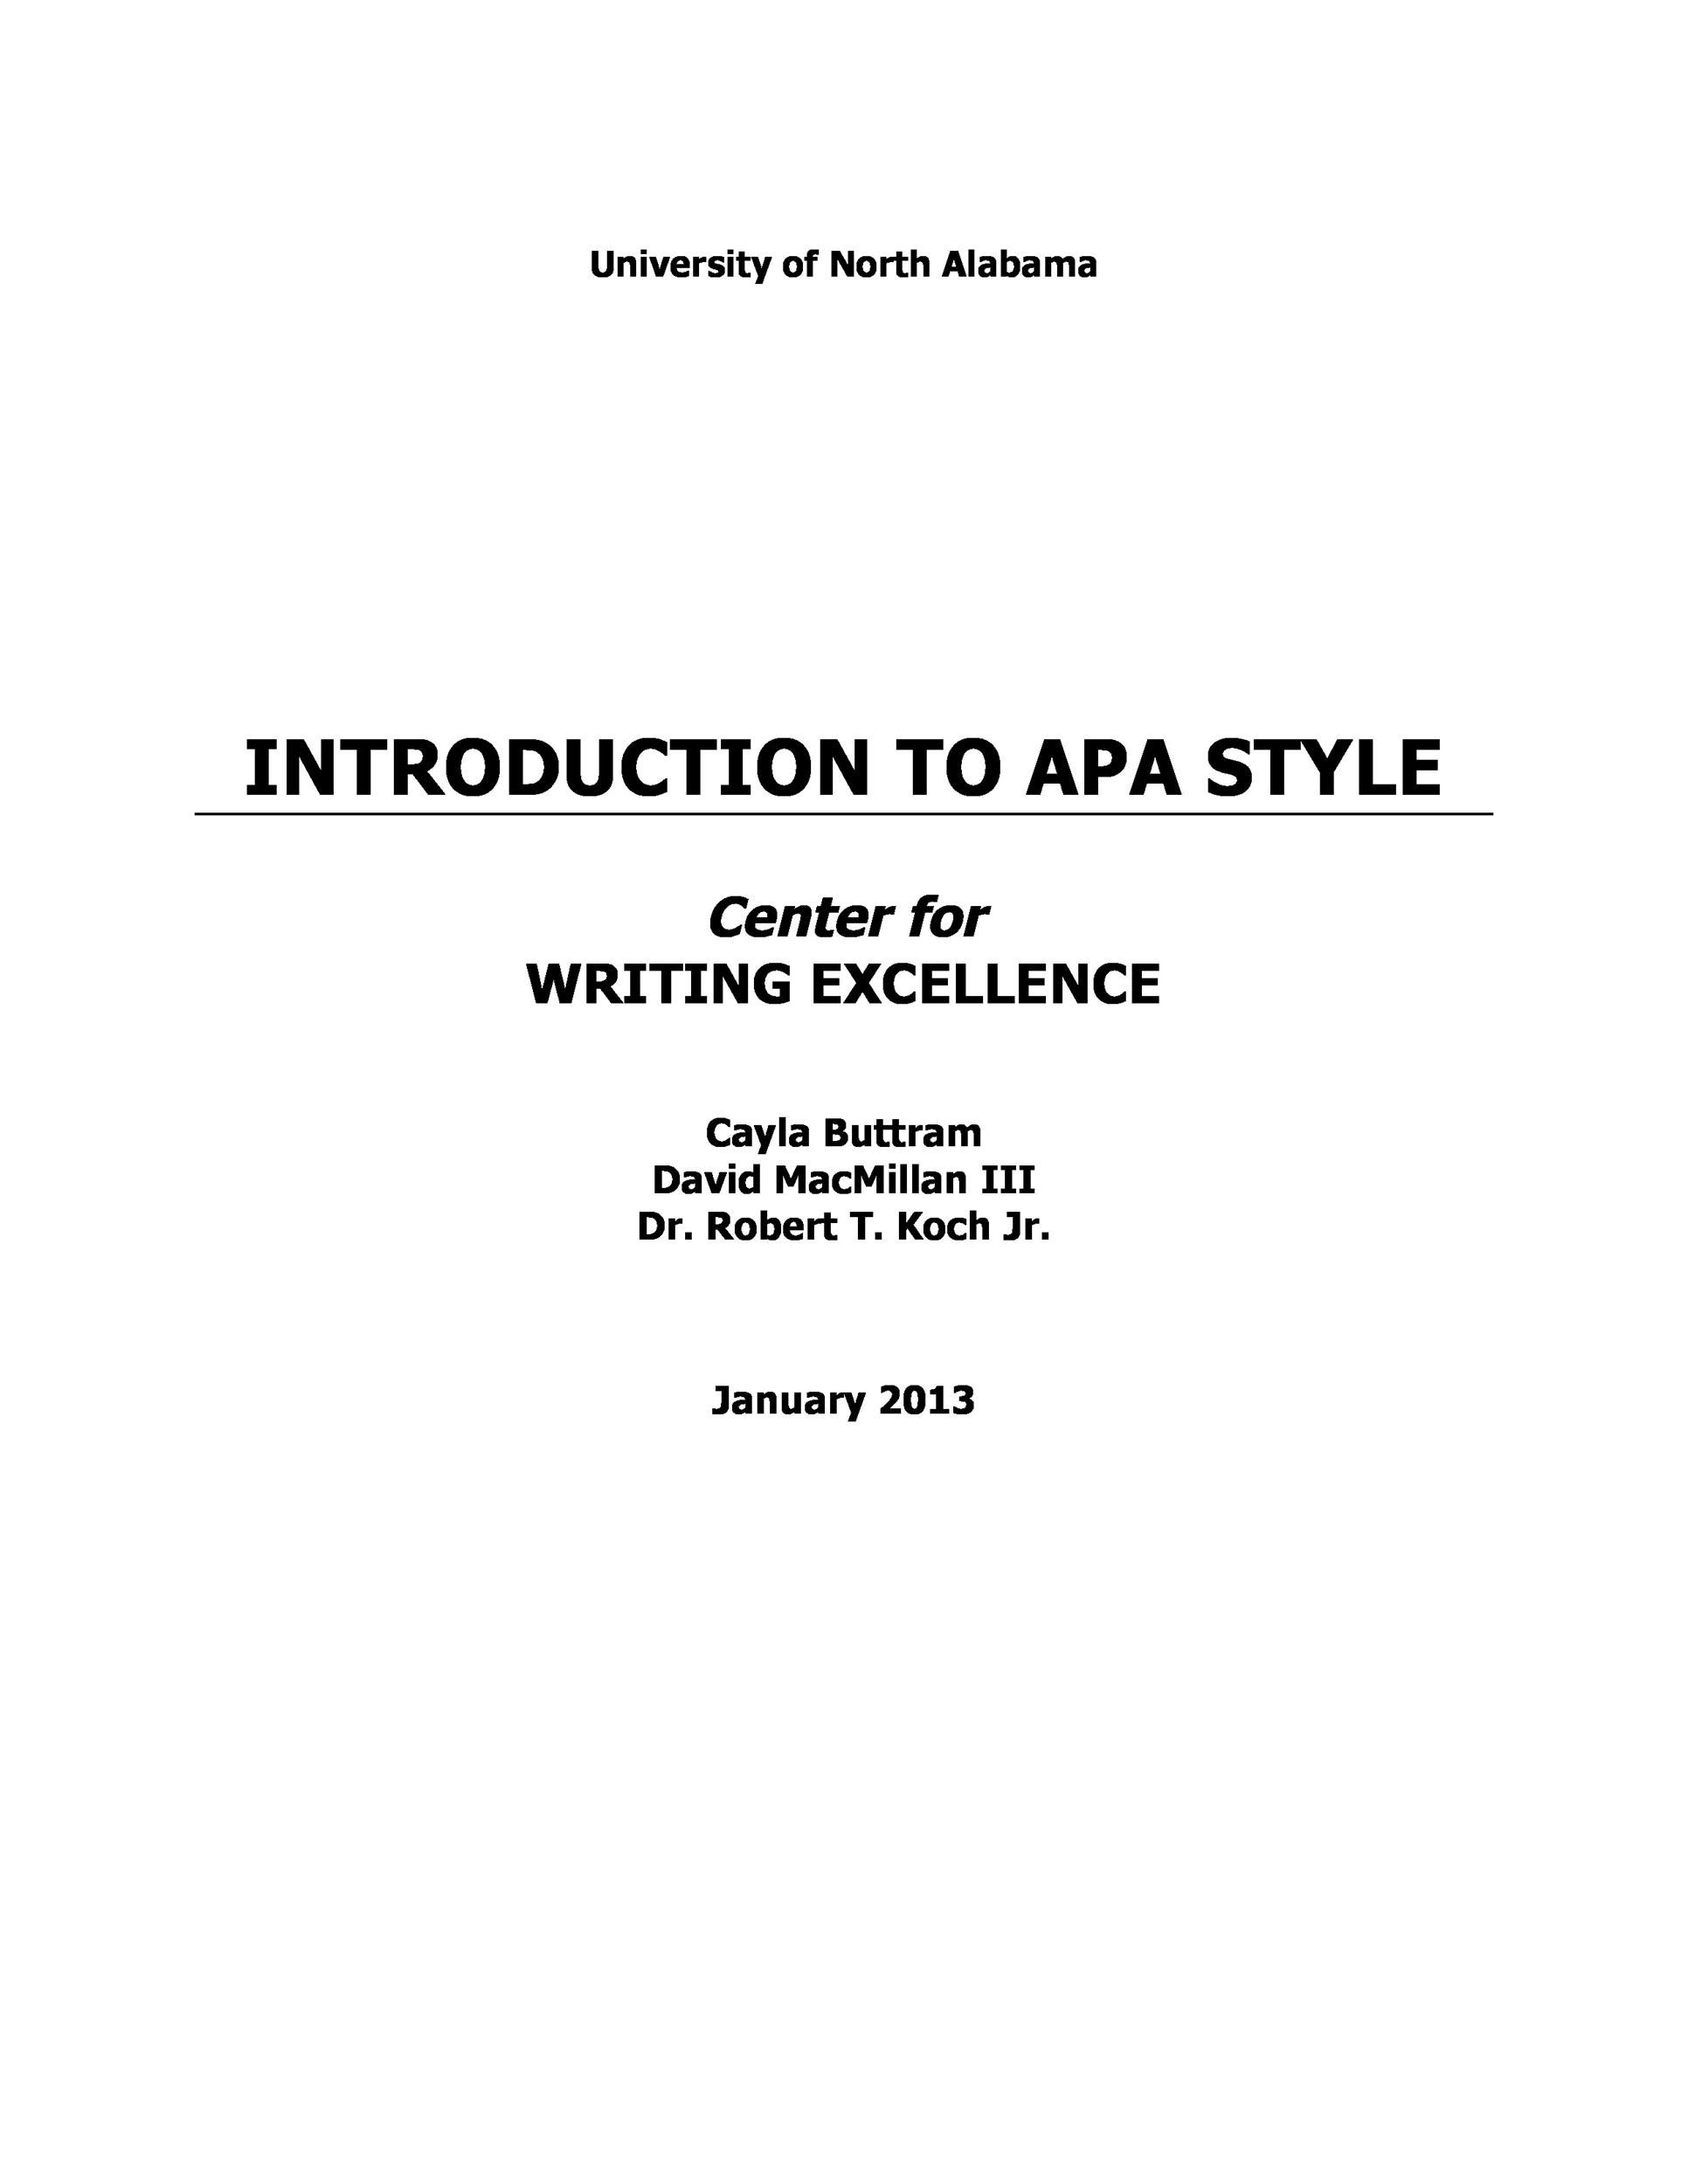 apa style guide research paper format How to write an apa style paper the american psychological association's (apa) method of citation is one of the most widely used styles for writing scientific and research papers, particularly in fields like psychology, sociology.